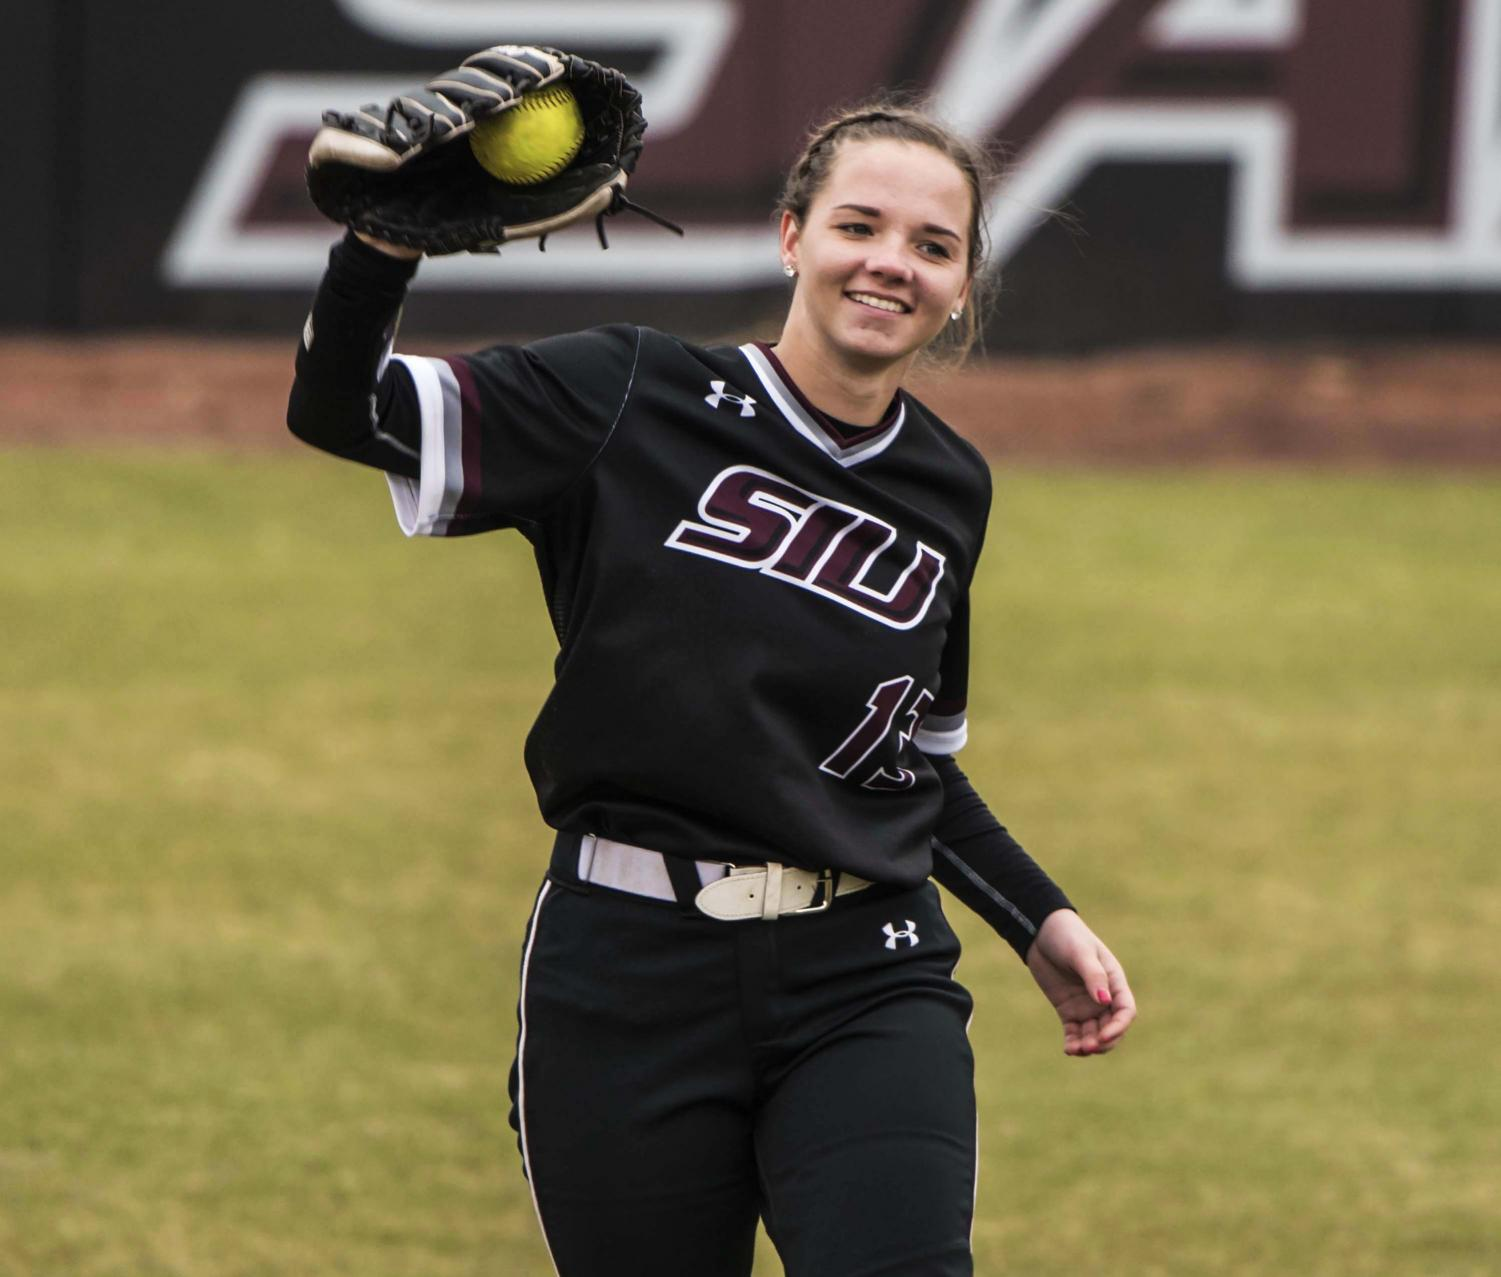 Outfielder+Maris+Boelens+smiles+as+she+catches+the+ball+on+Friday%2C+Feb.+22%2C+2019+during+the+Salukis+3-0+win+against+Ohio+University+at+Charlotte+West+Stadium.+